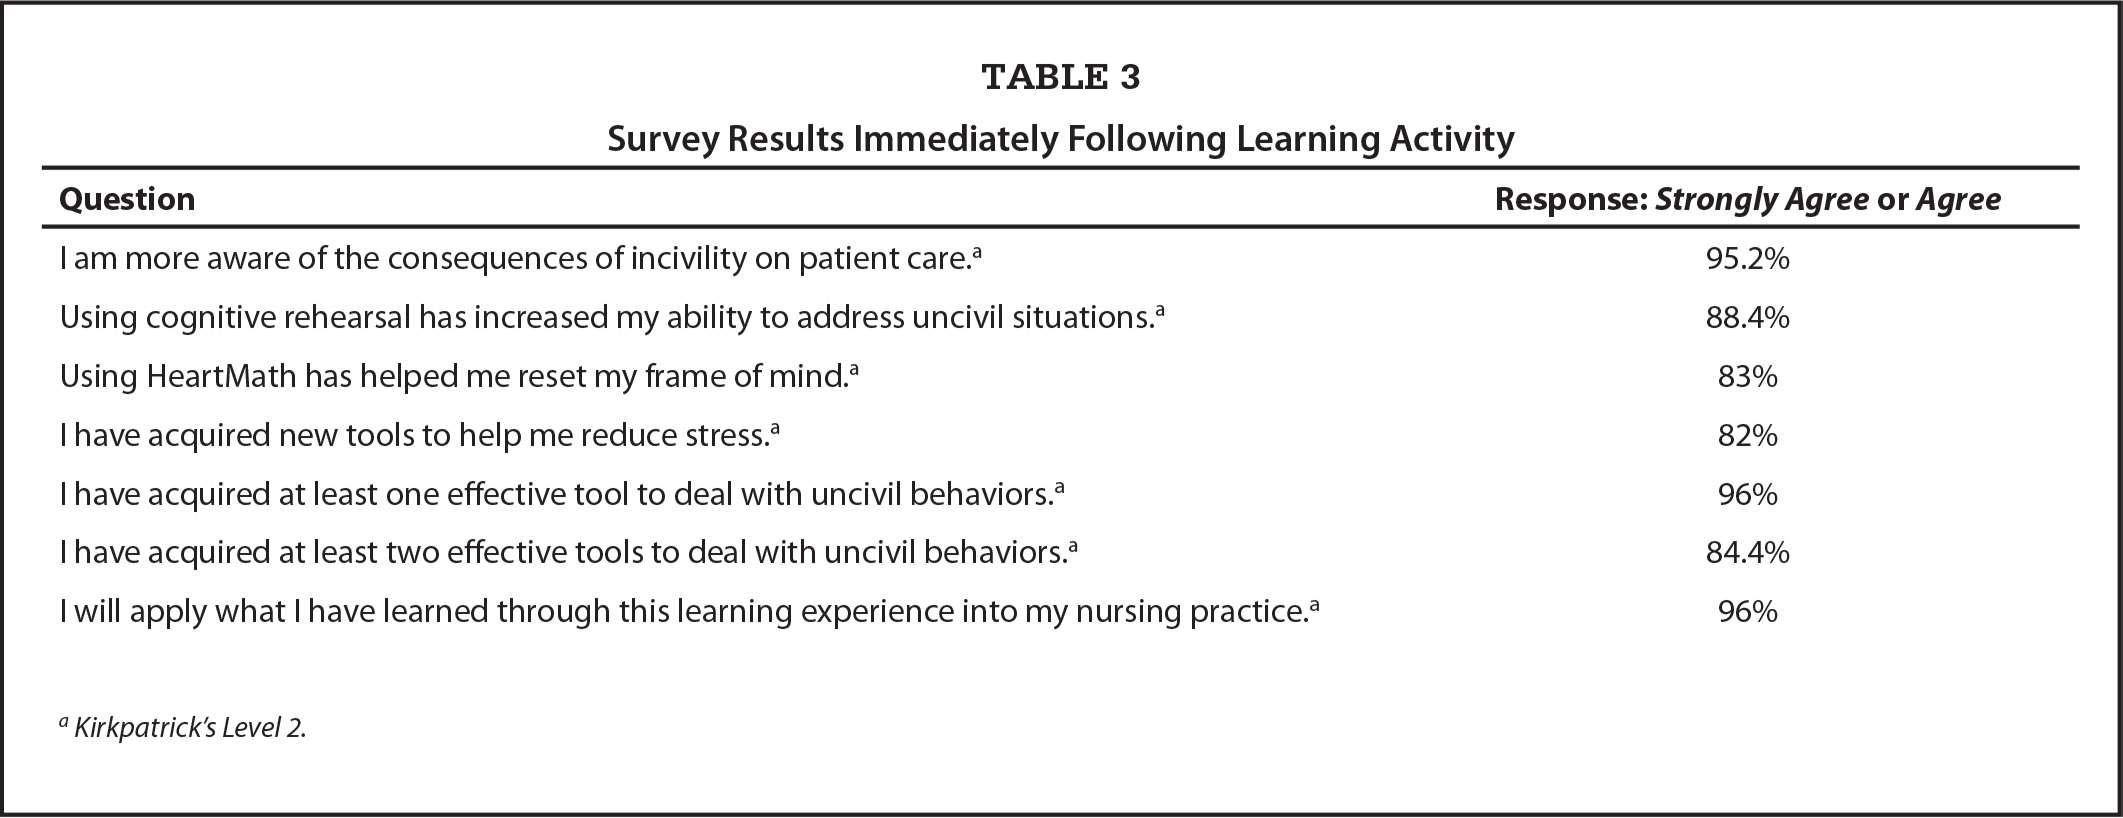 Survey Results Immediately Following Learning Activity